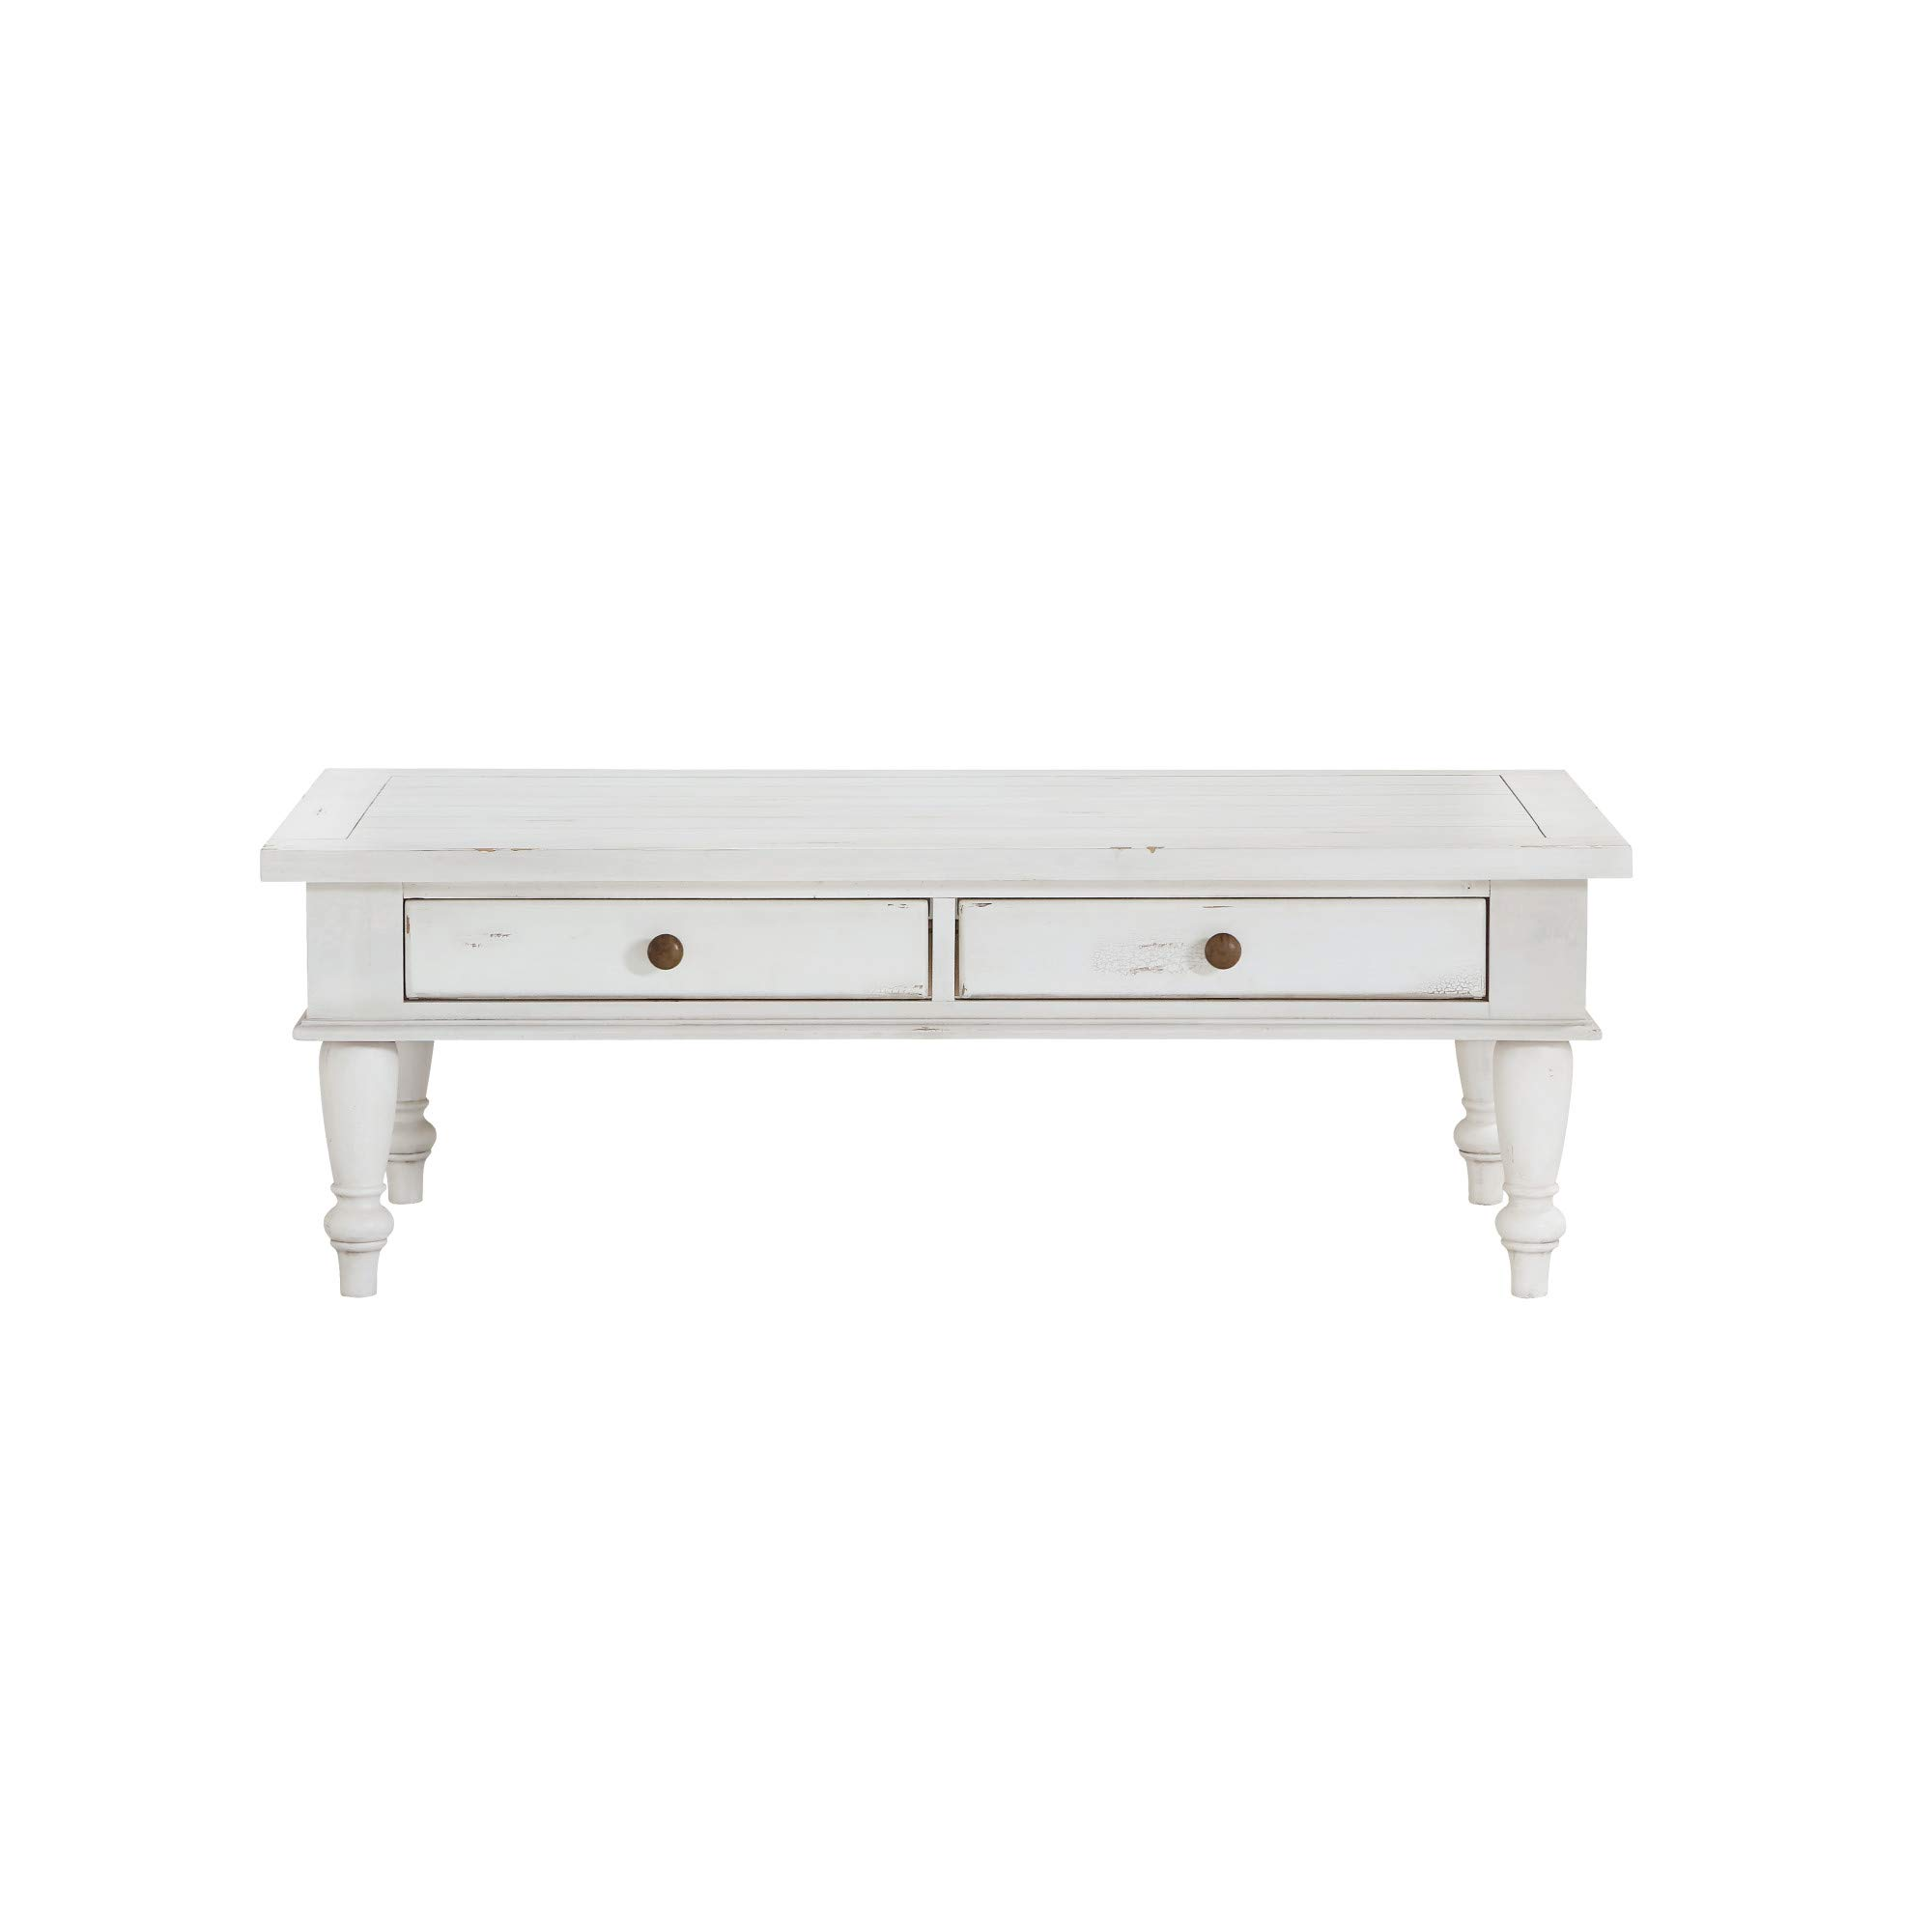 Novo 52'' Coffee Table in Alabaster with Easy Access Storage And Turned Legs, by Artum Hill